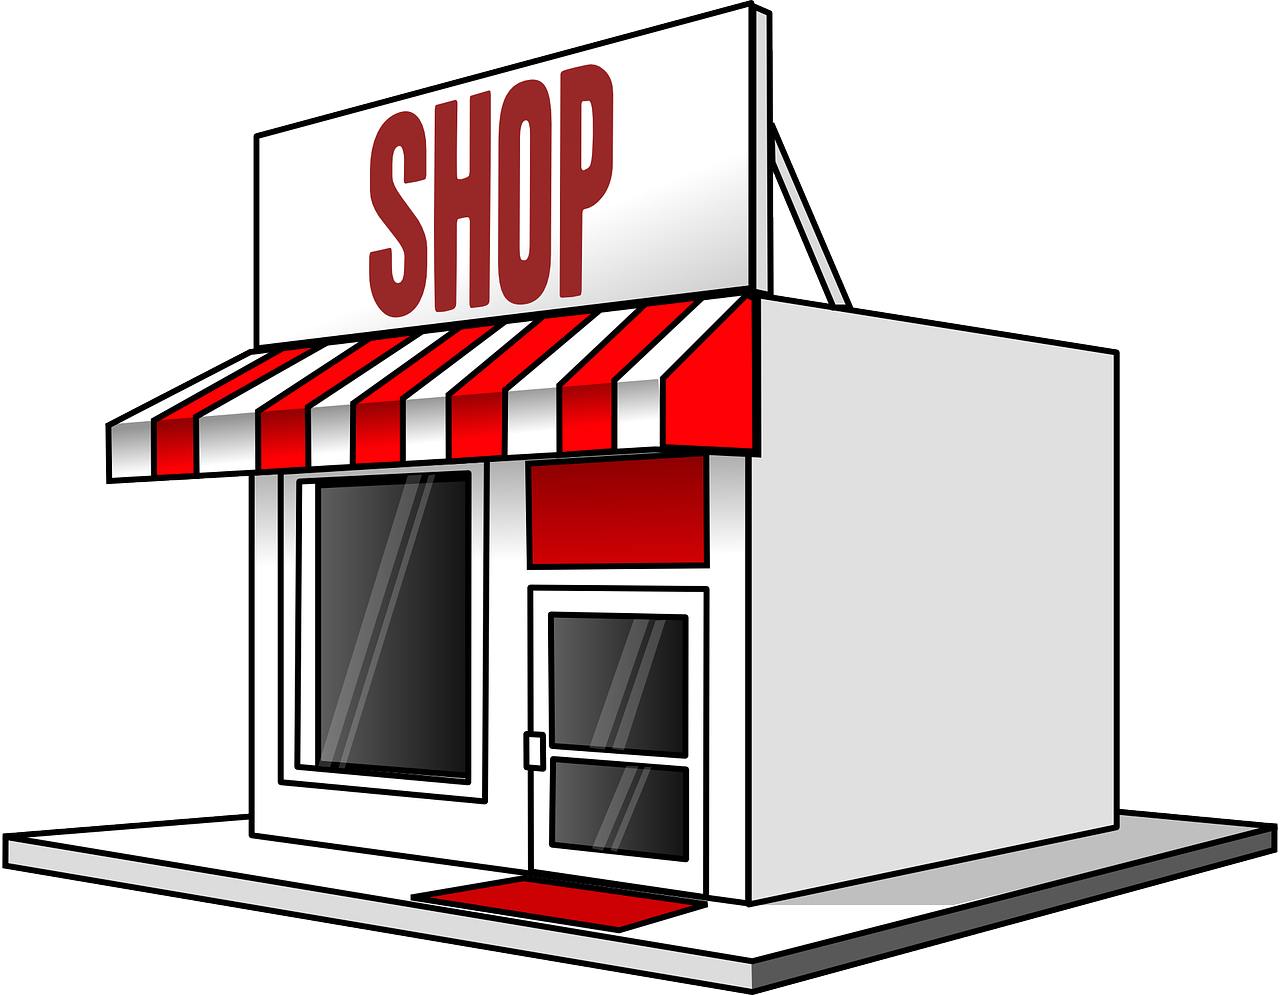 Retail clipground clip art. Employee clipart shop owner